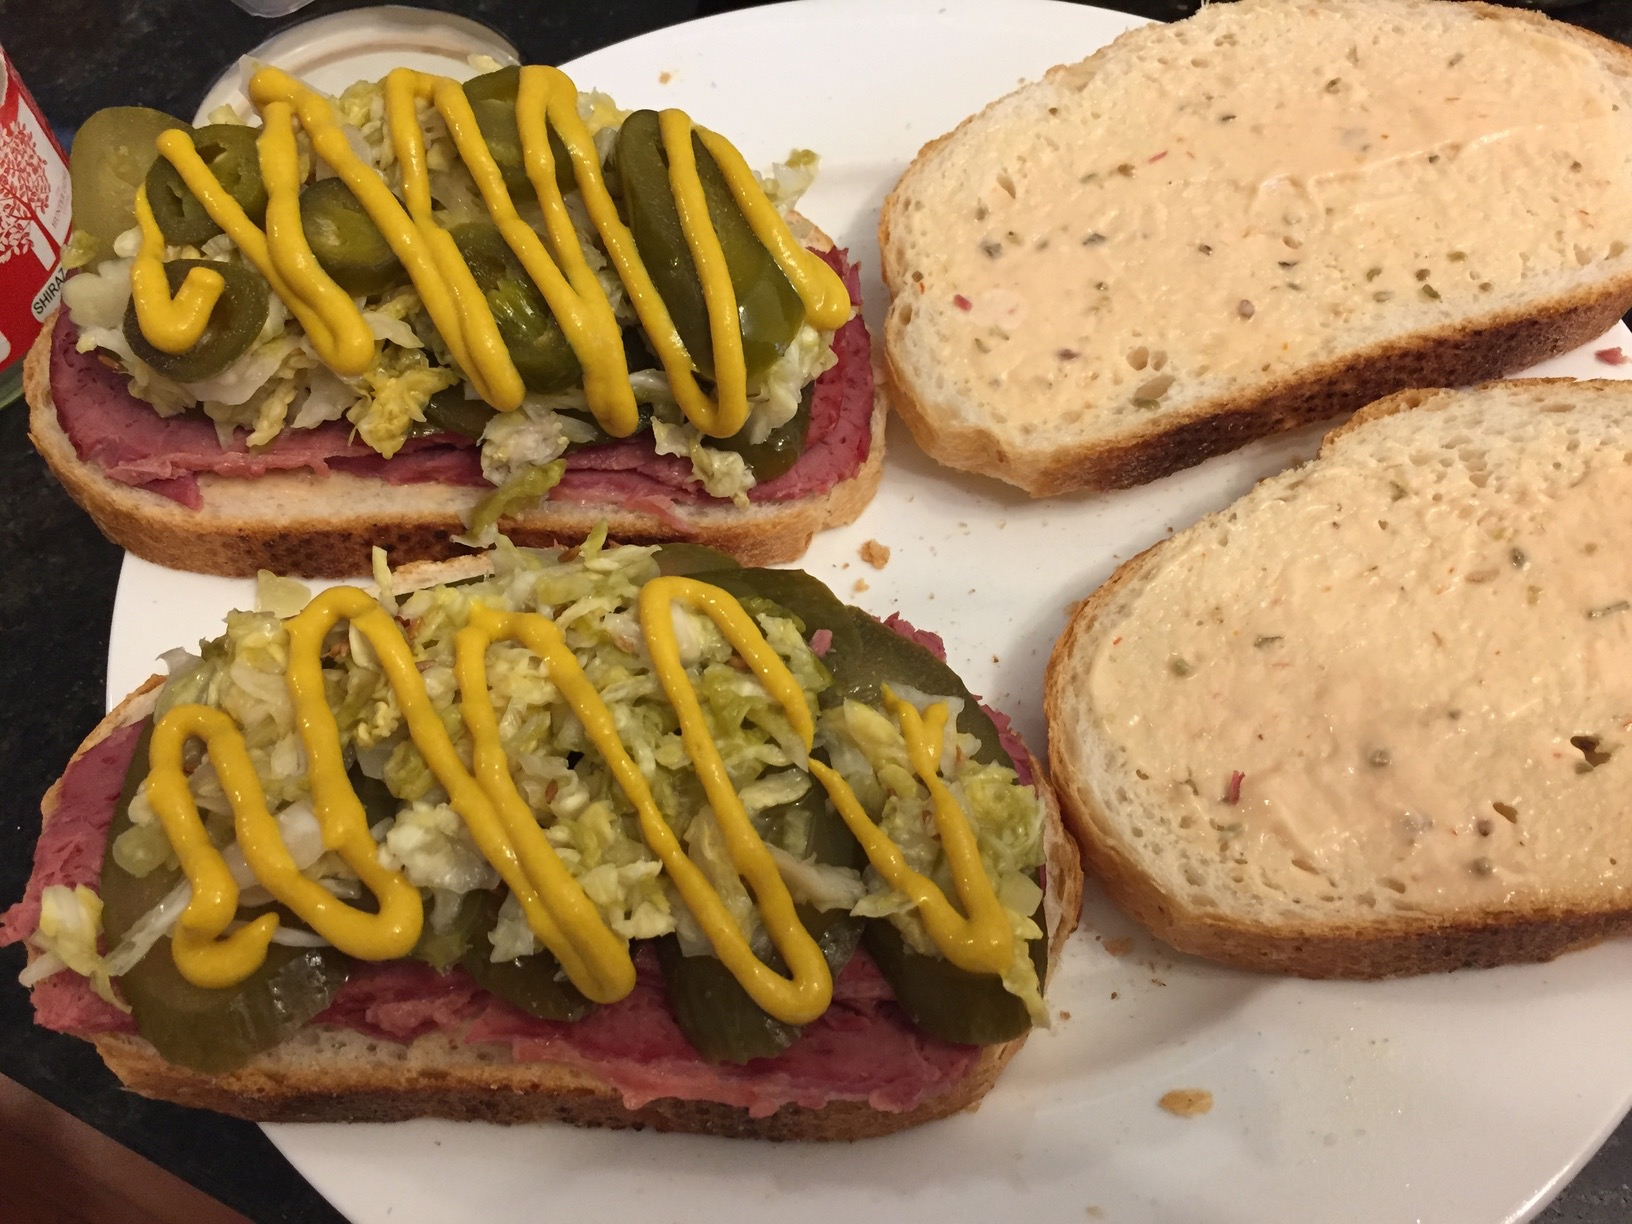 Reuben sandwiches with Russian dressing and American mustard, ready to be toasted. Mine has jalapenos on it because... jalapenos are awesome!